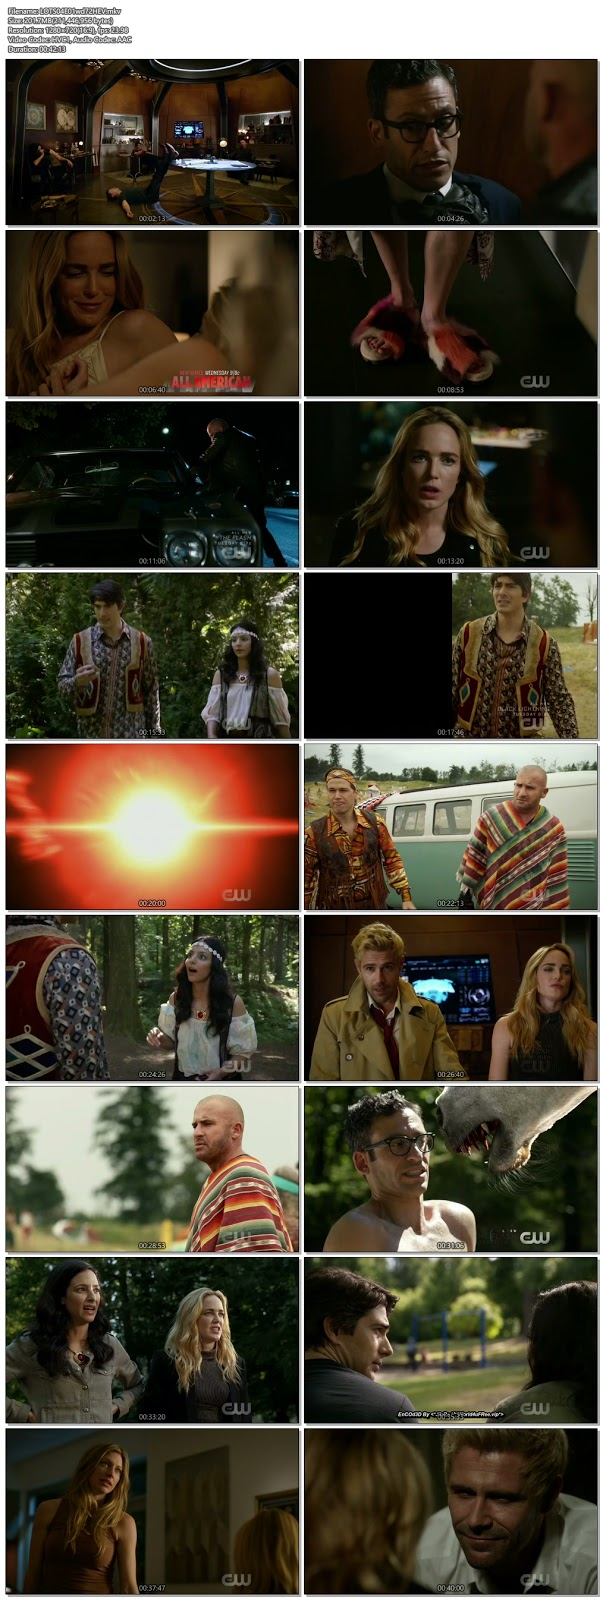 Legends of Tomorrow S04 Episode 01 720p HDTV 200MB ESub HEVC, hollwood tv show hevc x265 hdrip 250mb 270mb free download or watch online at world4ufree.vip